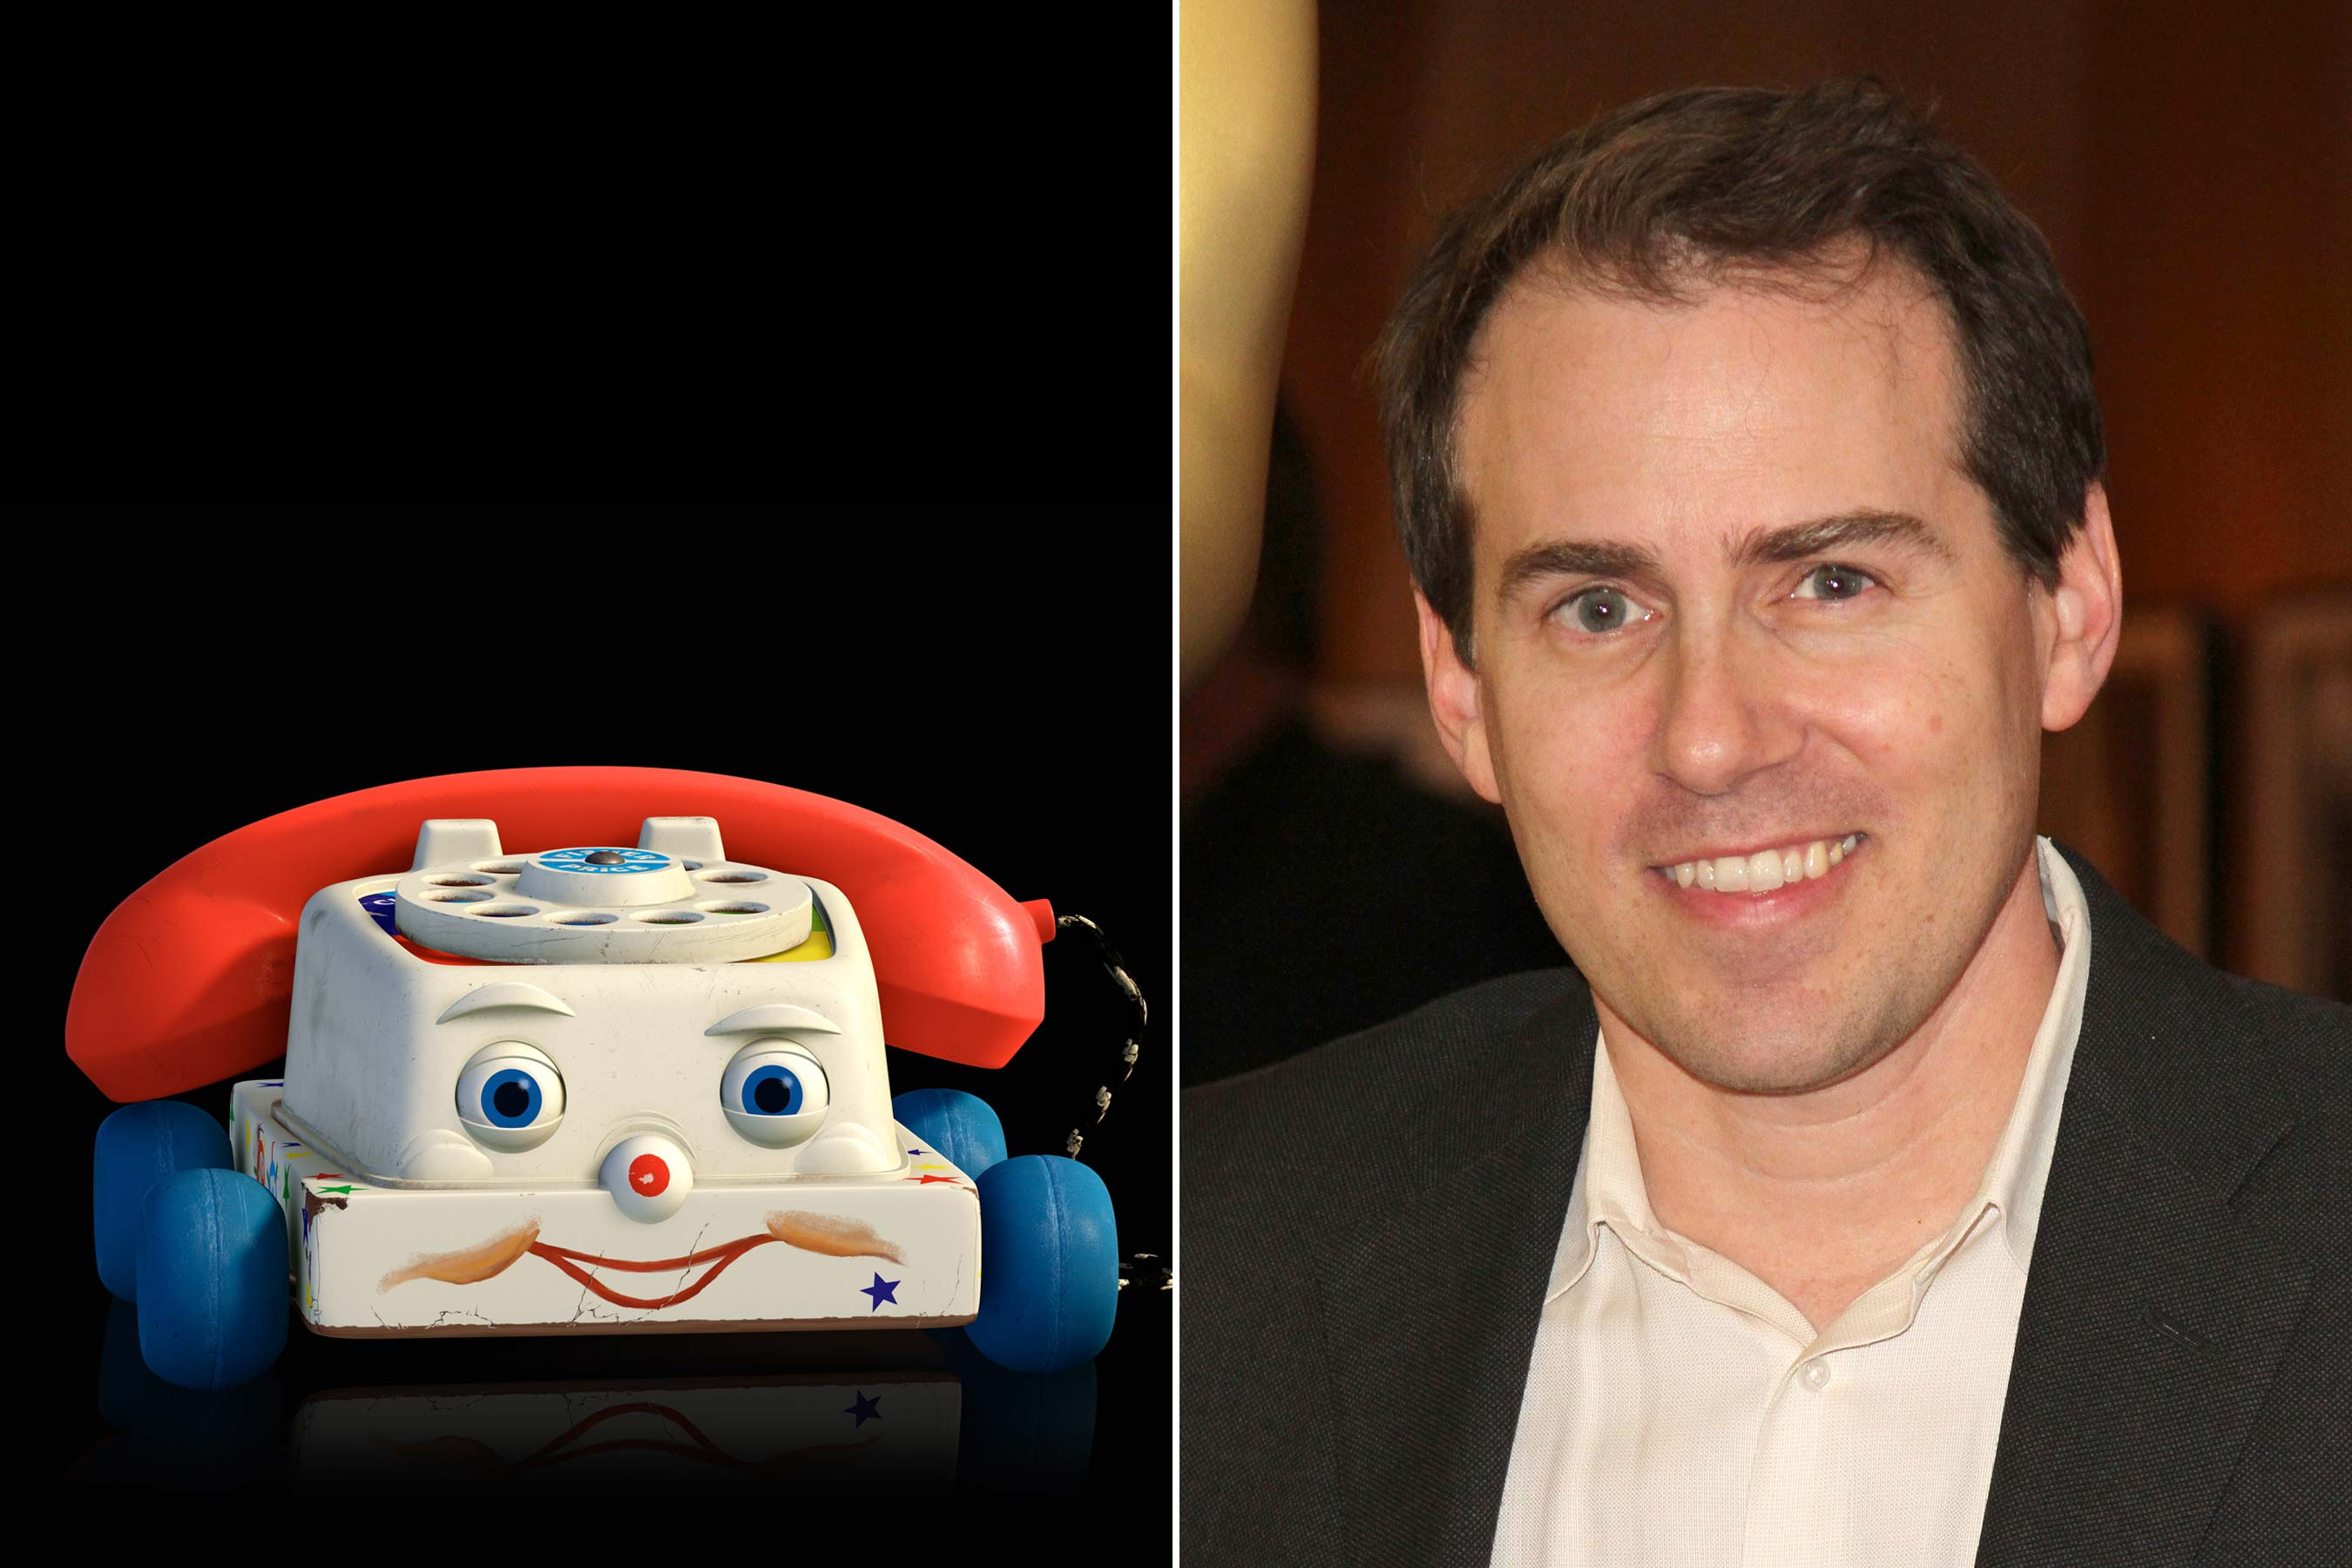 Chatter Telephone - Teddy Newton (Toy Story 3)